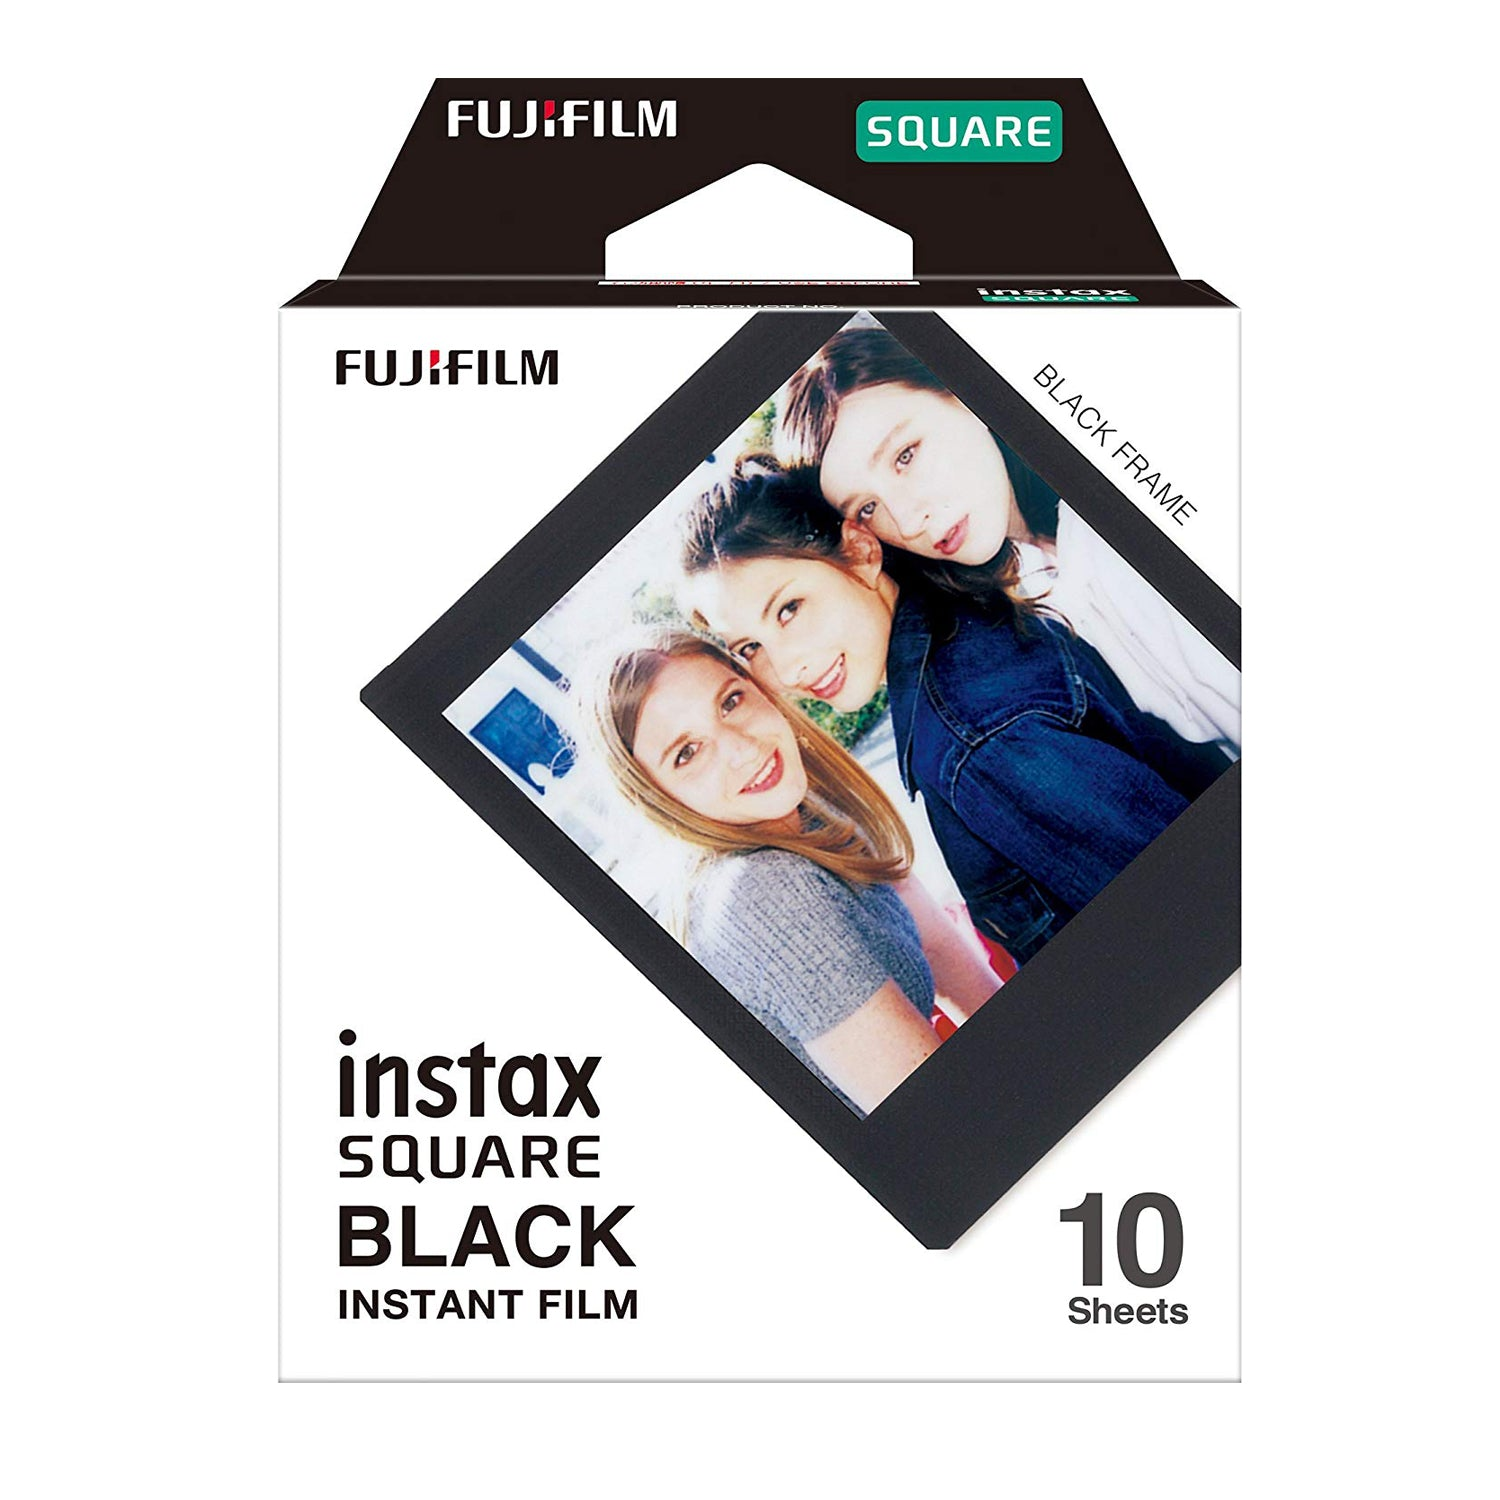 Fujifilm Instax Square 10 shot black & 10 shot white border Film Roll (Pack of 2)